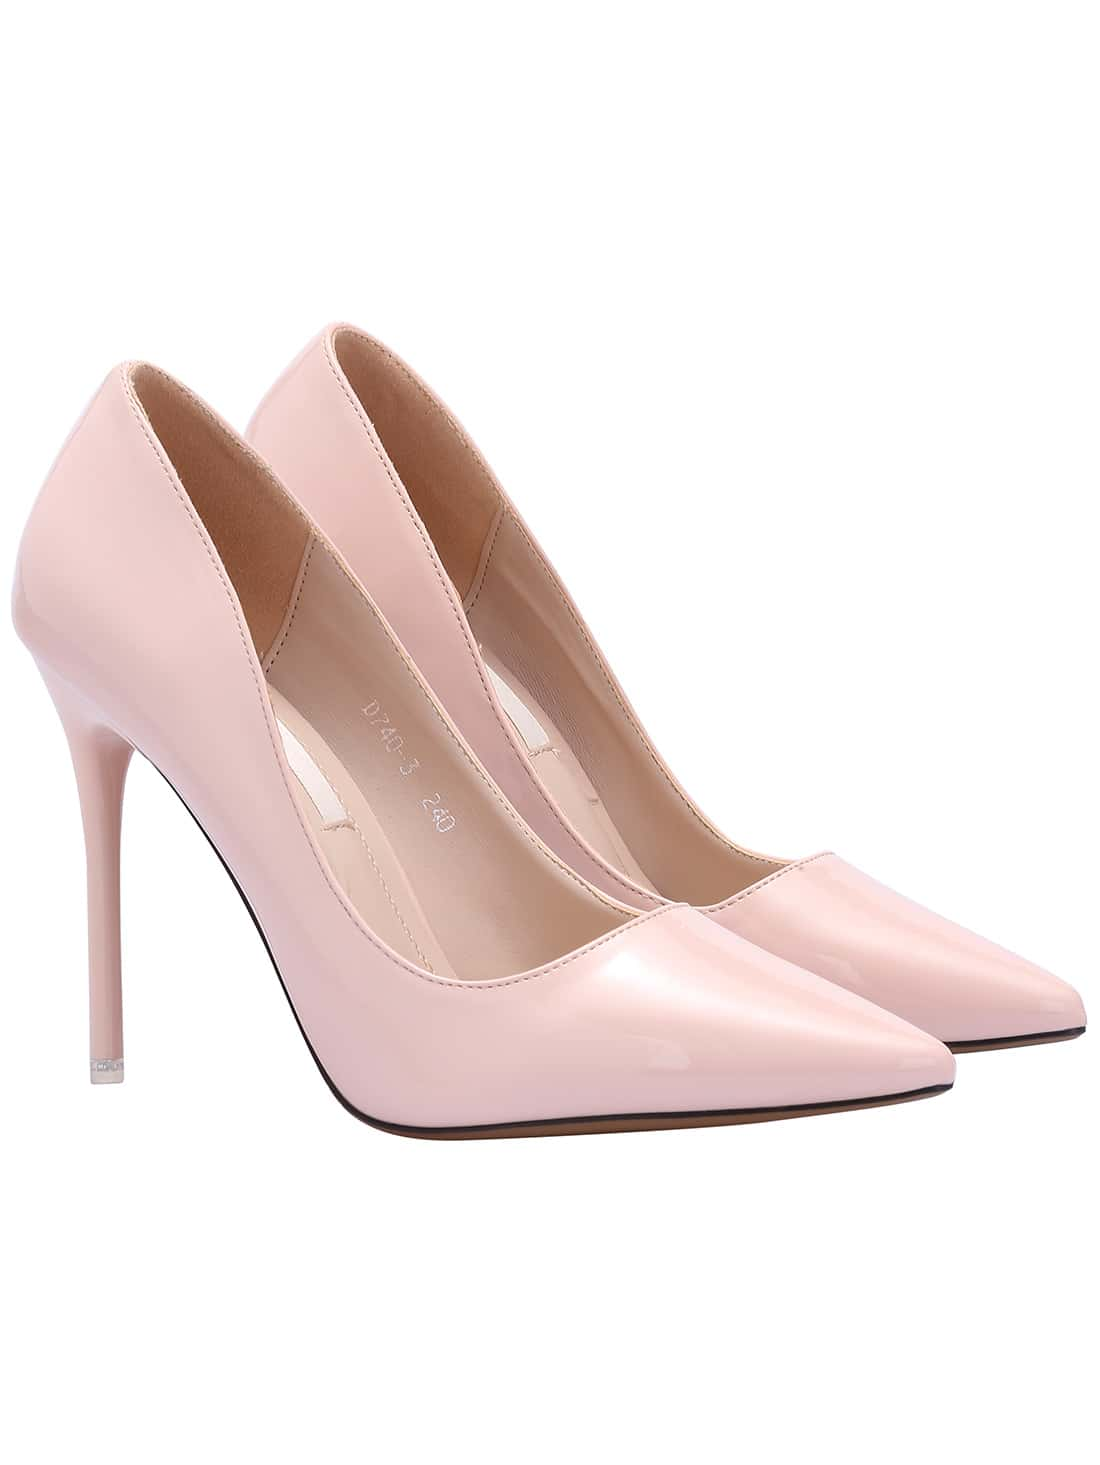 Pink Pointed Toe Patent Leather Pumps